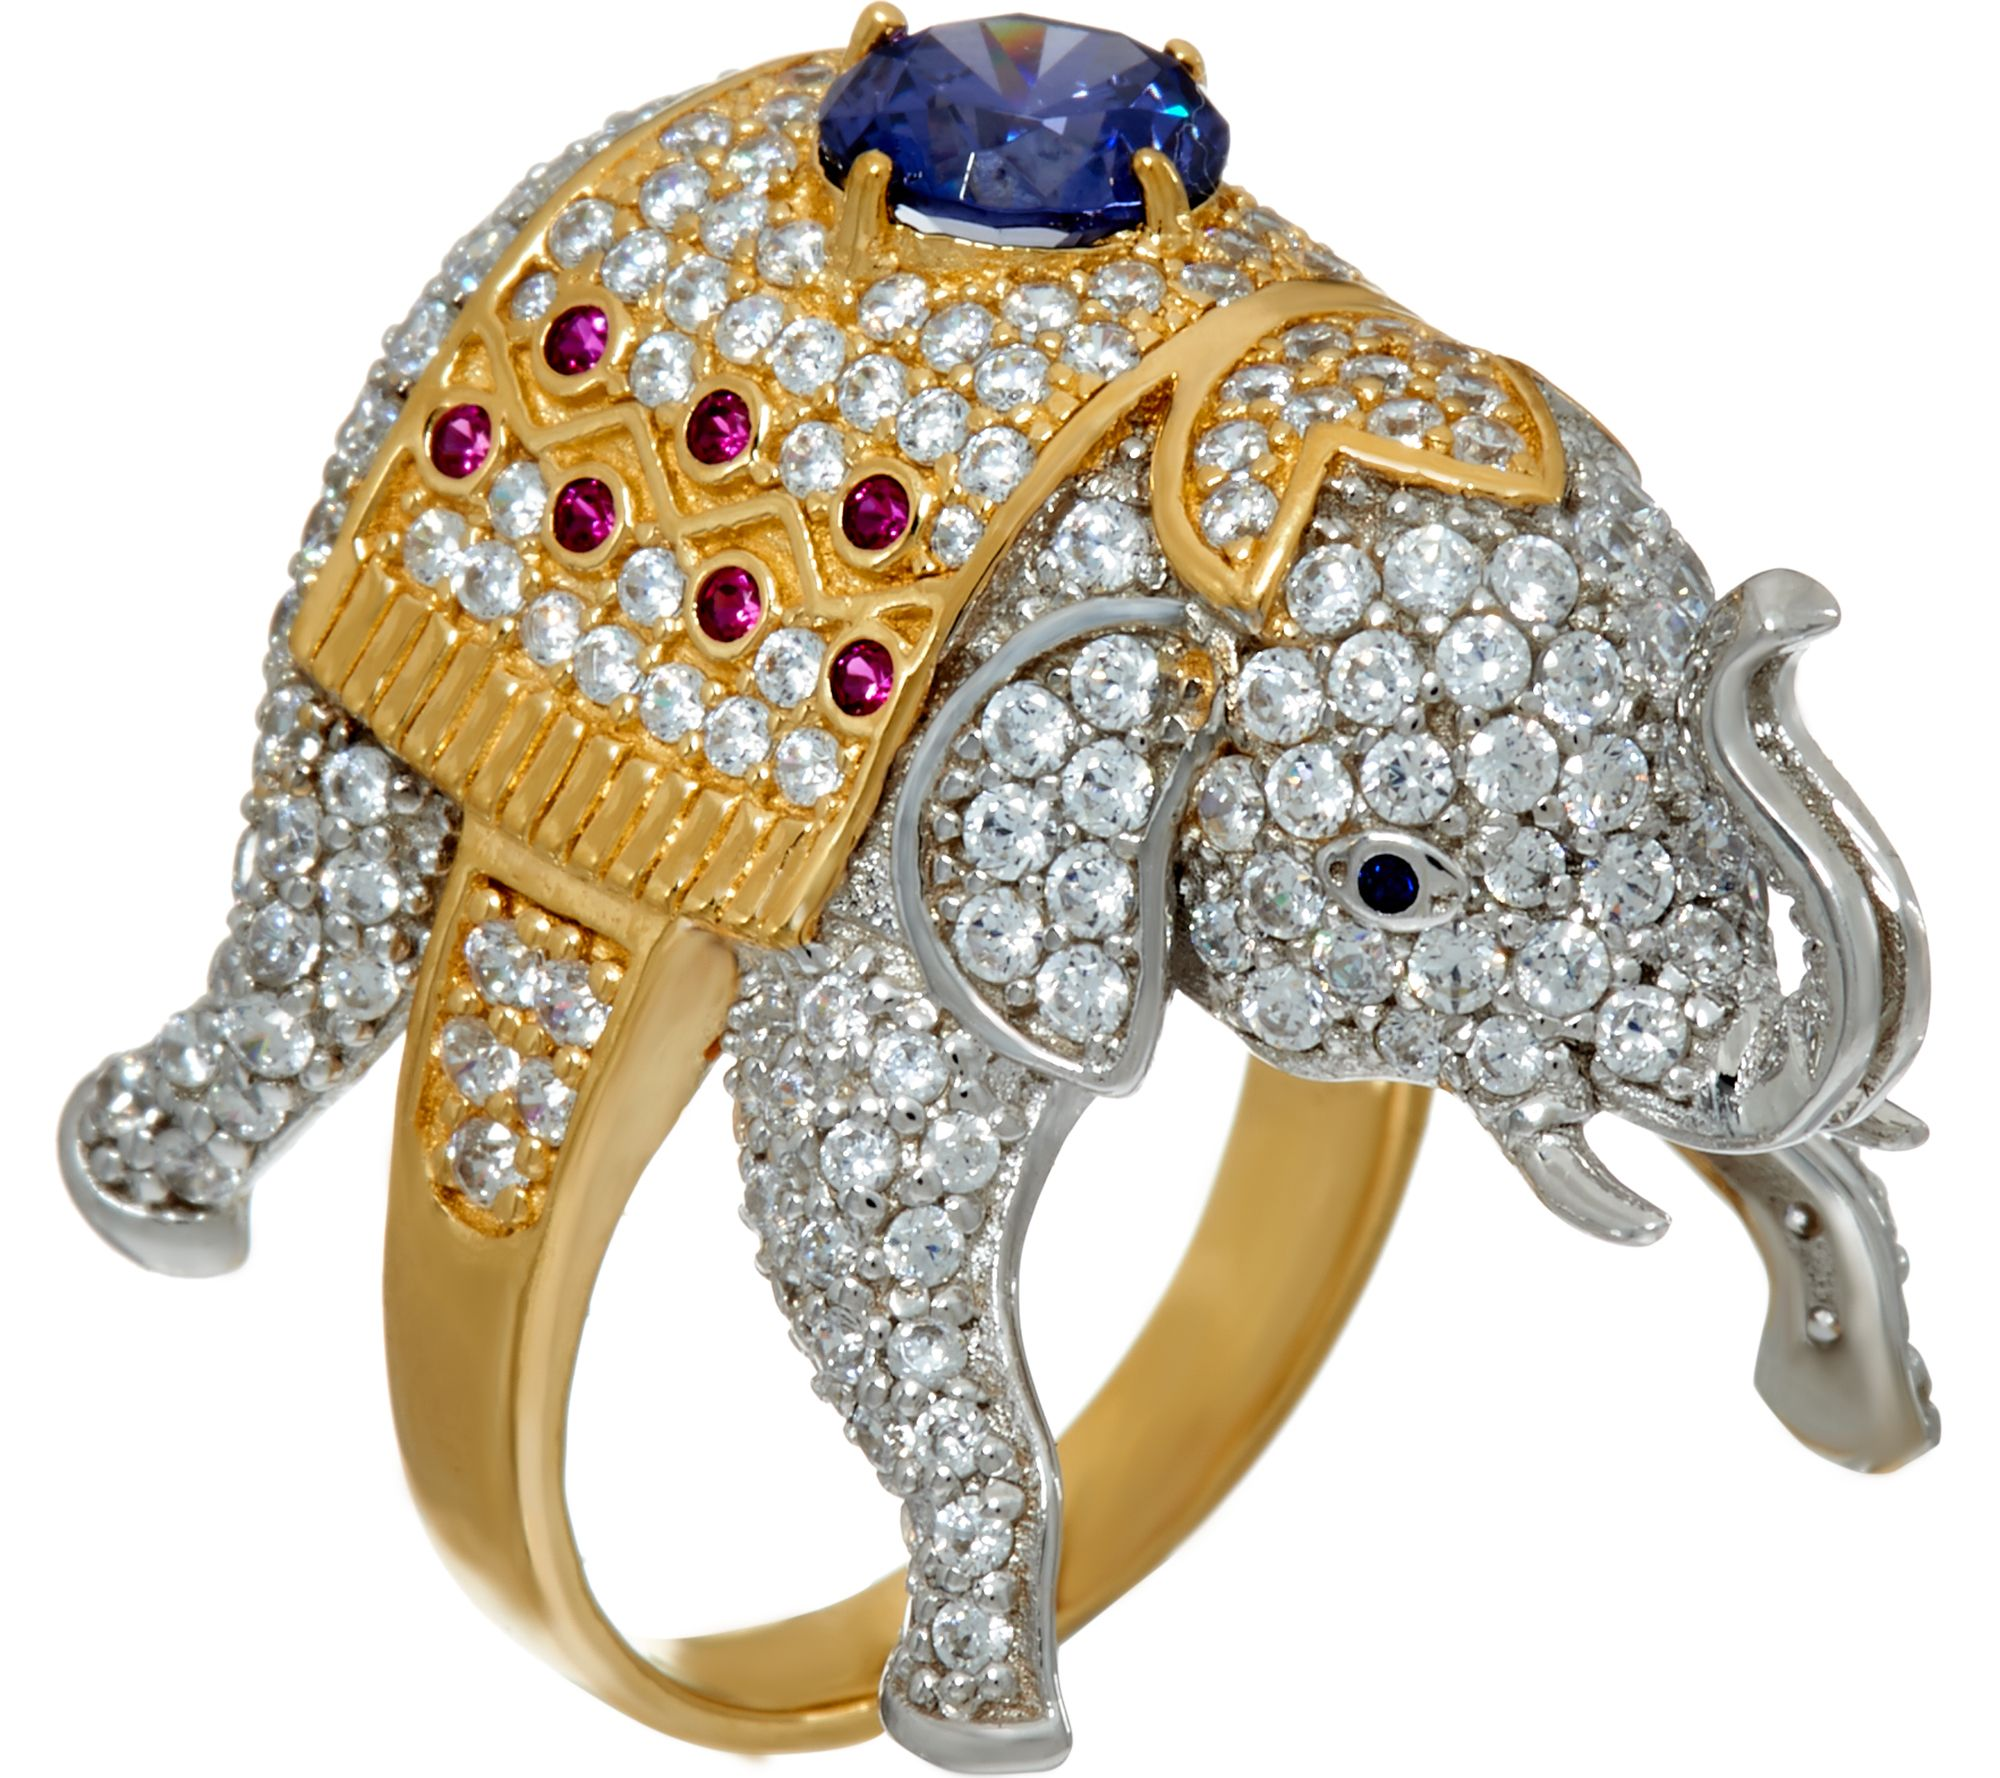 image rings engagement orla blue sterling swarovski silver elephant womens kiely ring